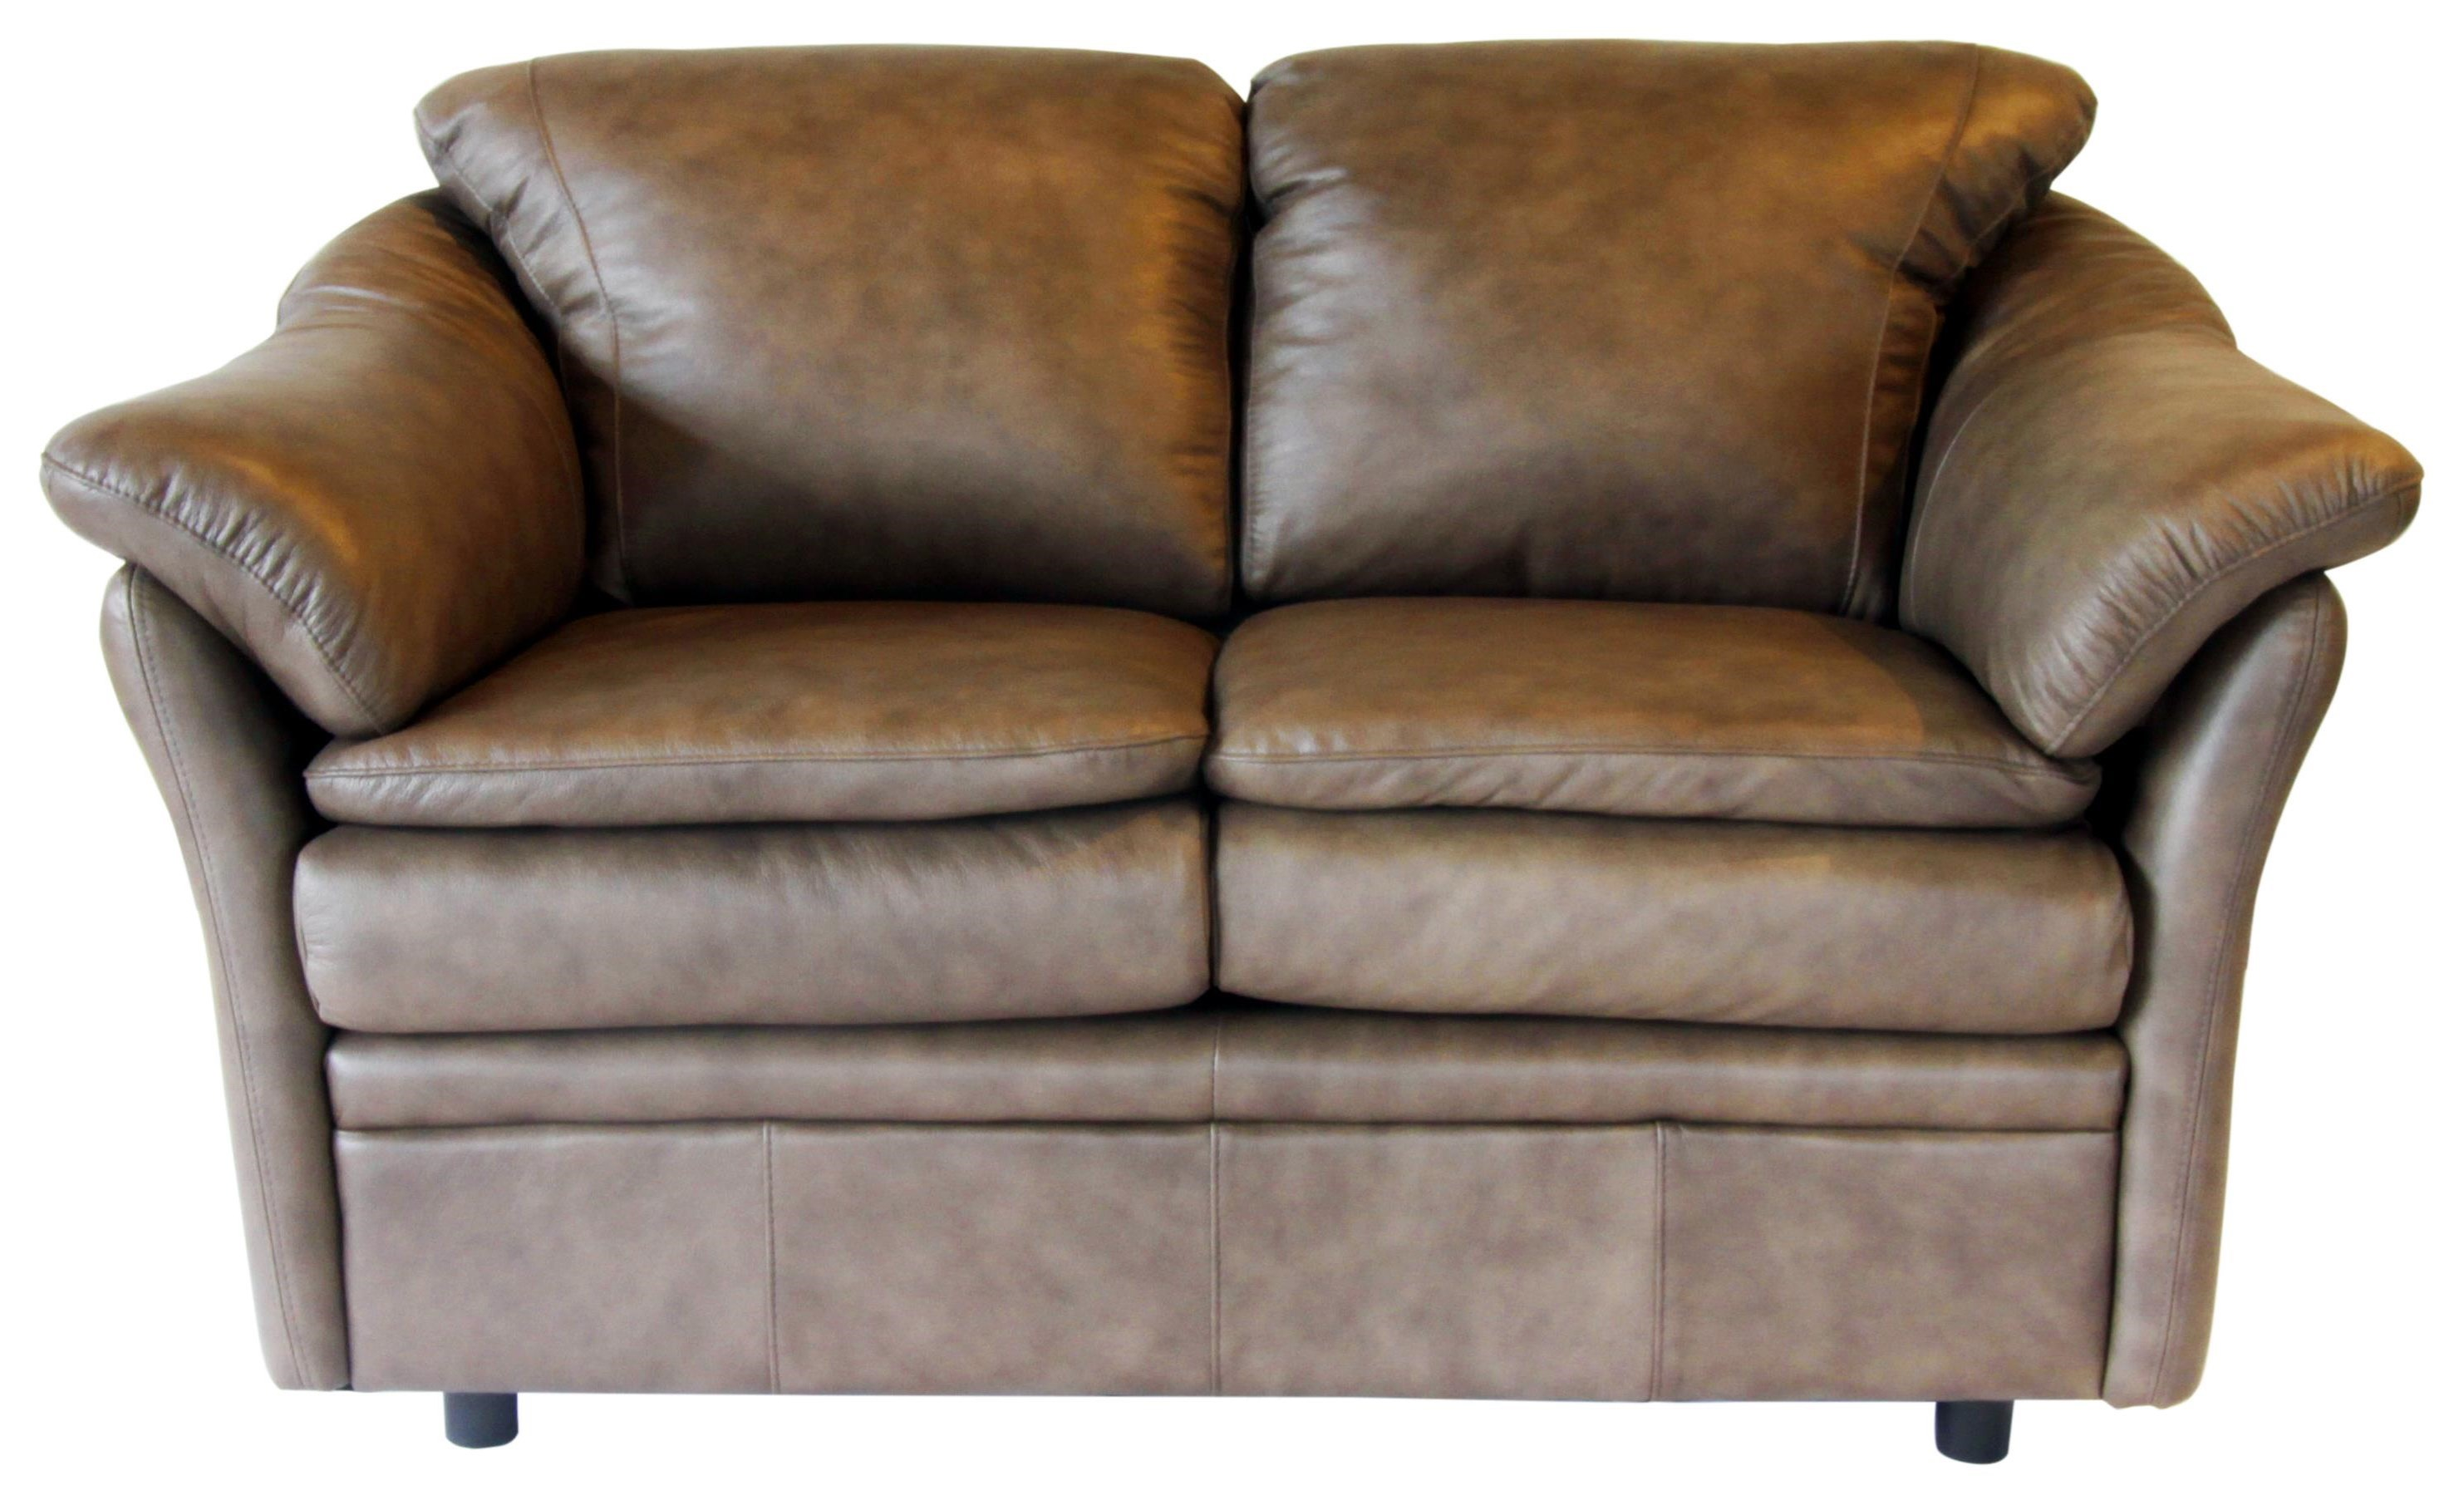 Omnia Leather UptownLoveseat; Omnia Leather UptownLoveseat